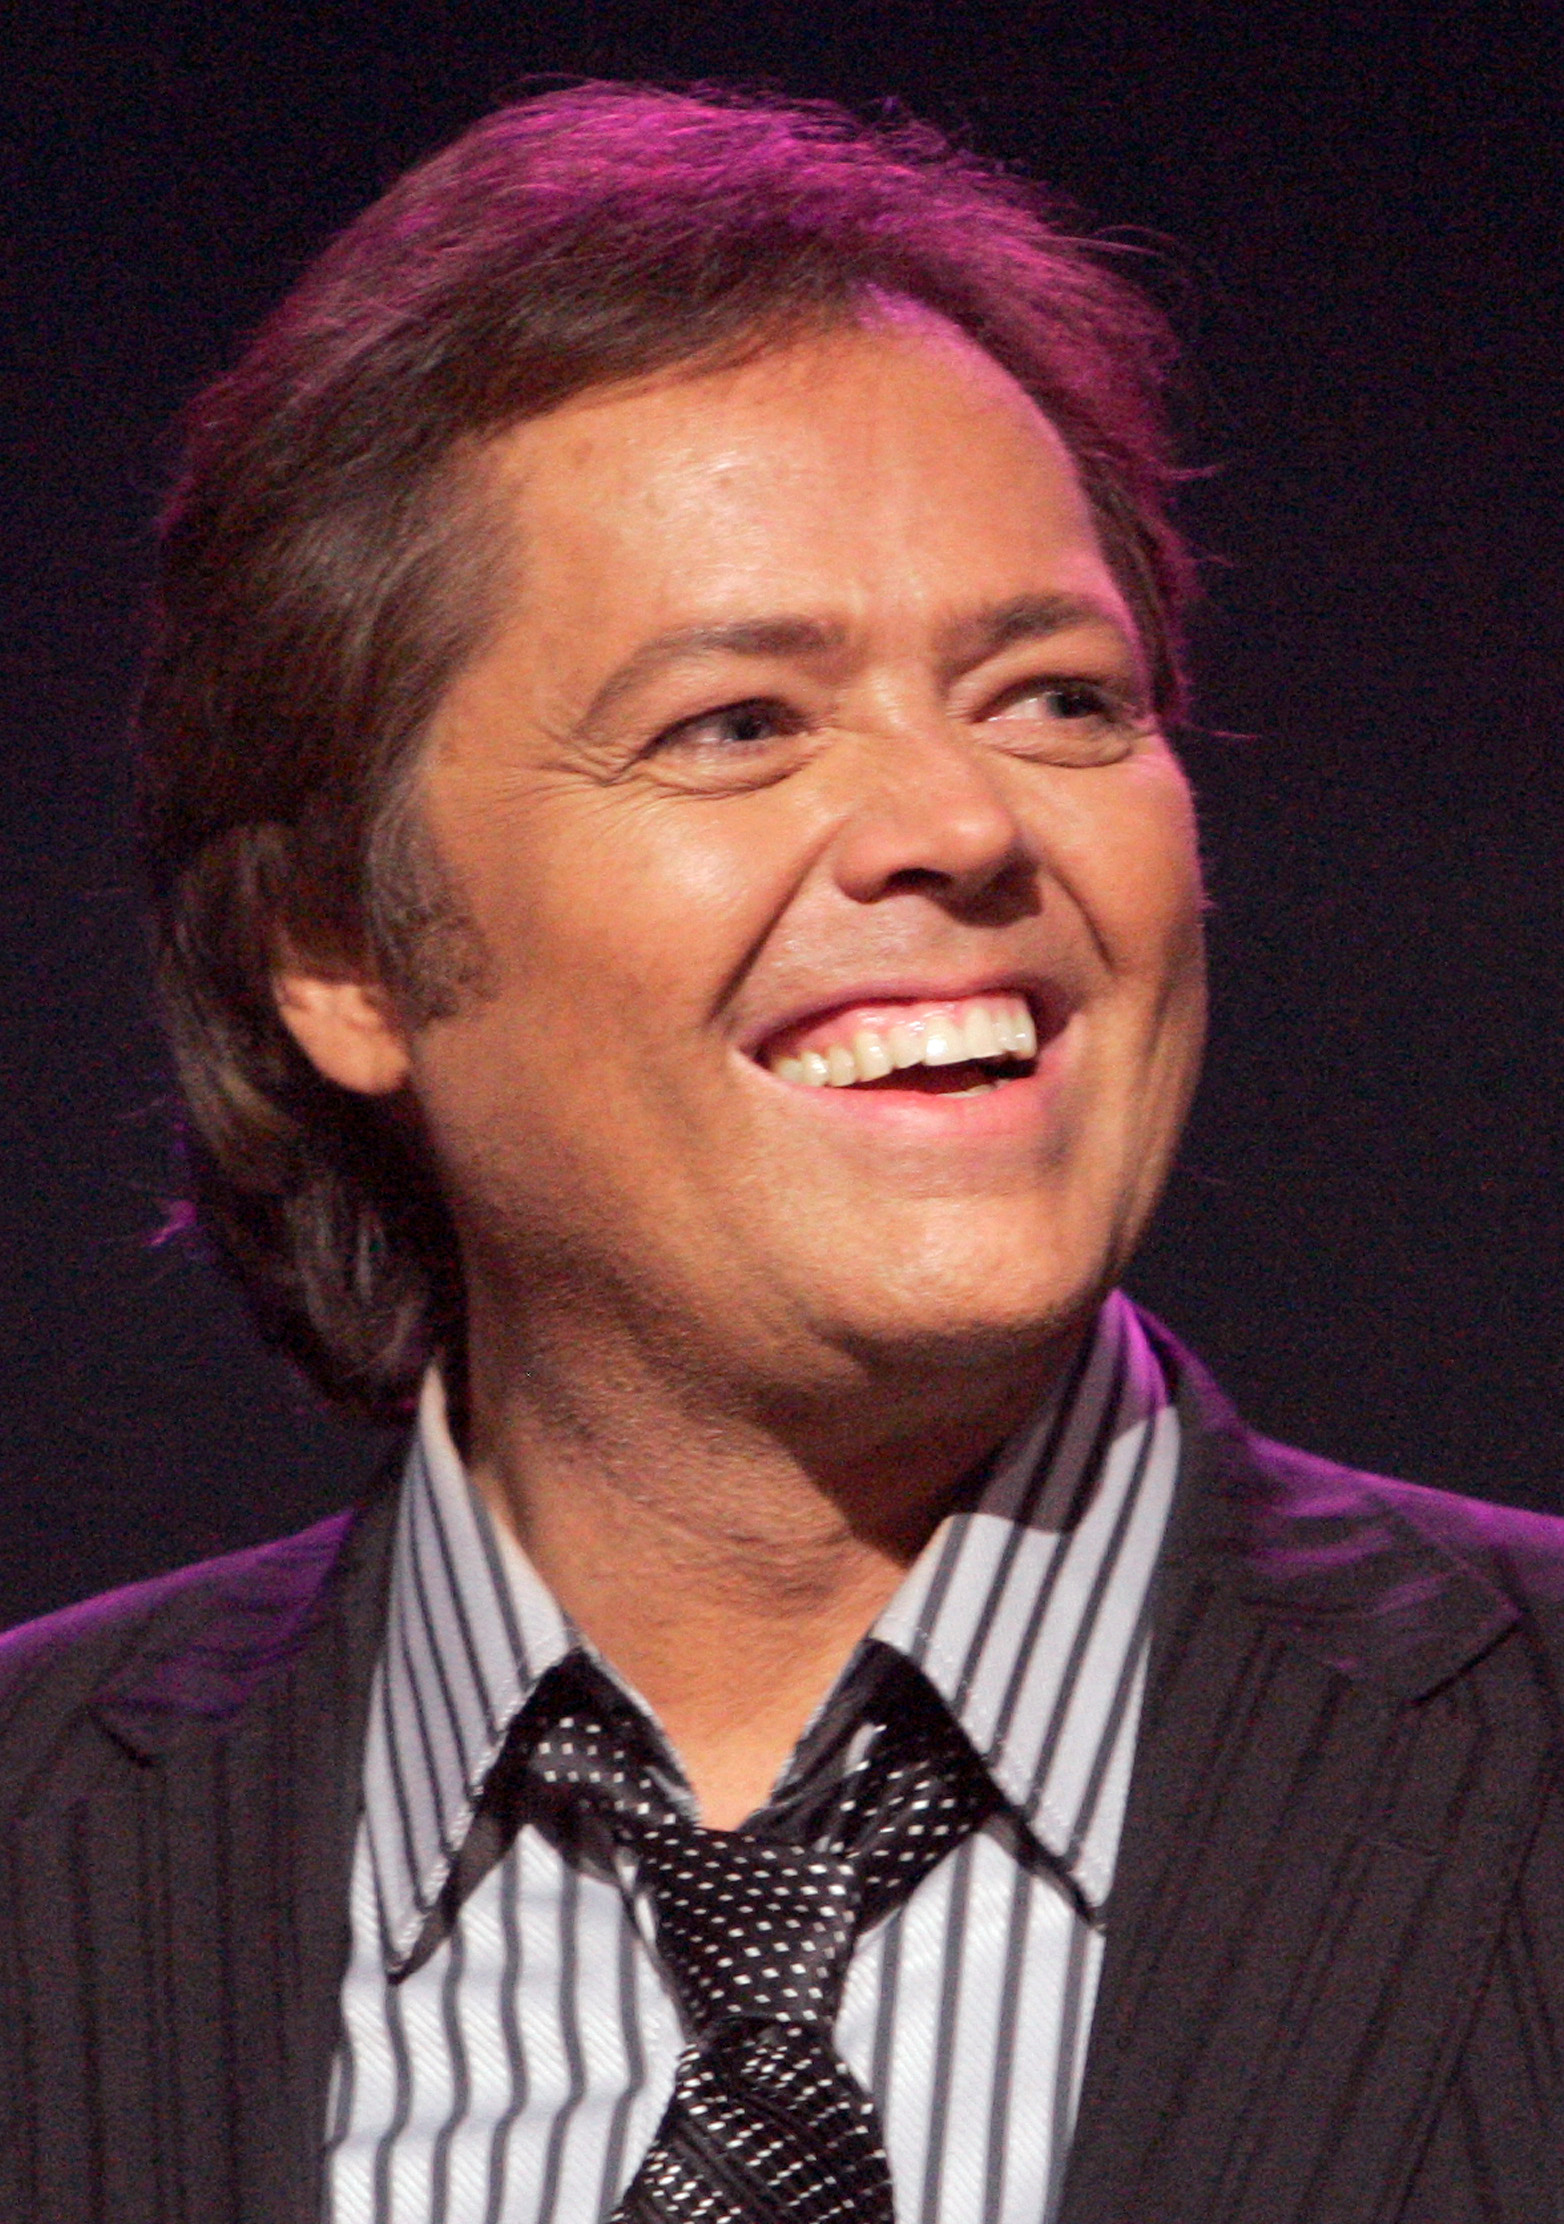 FILE PHOTO: Jimmy Osmond smiles at an Osmond 50th anniversary show at the Orleans hotel-casino in Las Vegas, Nevada August 13, 2007. REUTERS/Steve Marcus